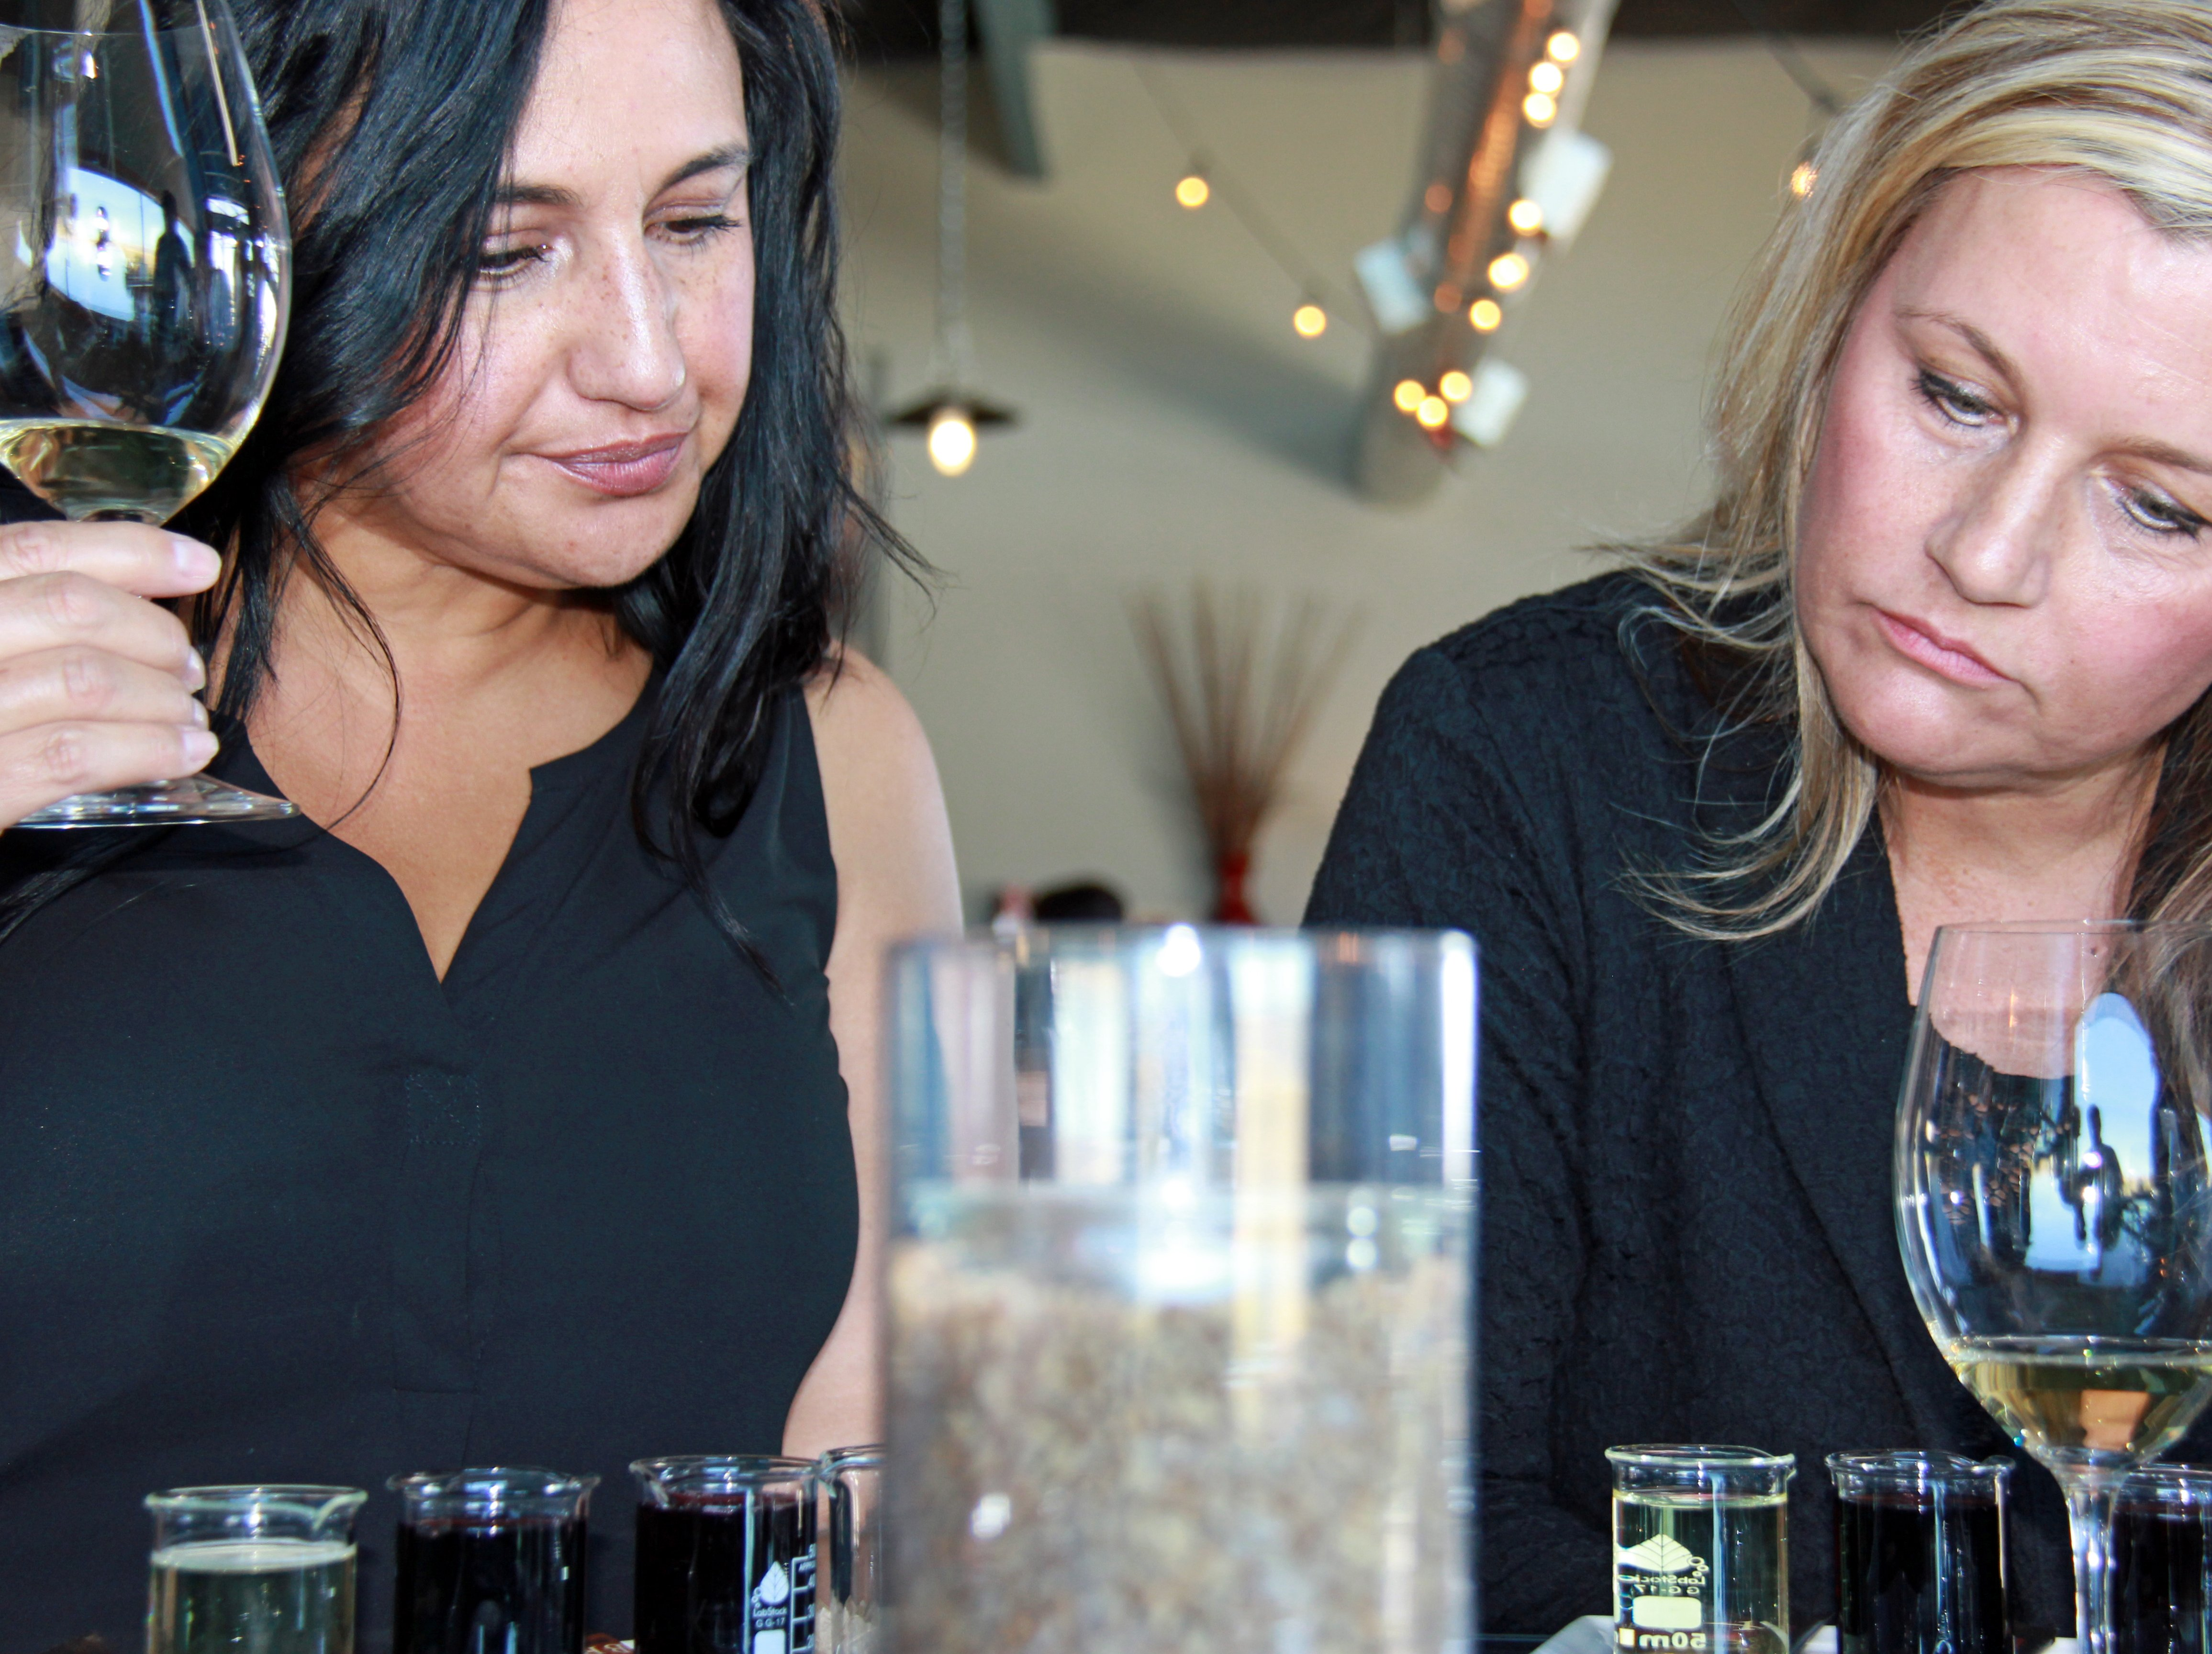 Reviewing the tasting notes at the Lindsay Creek Winery in Lewiston, Idaho